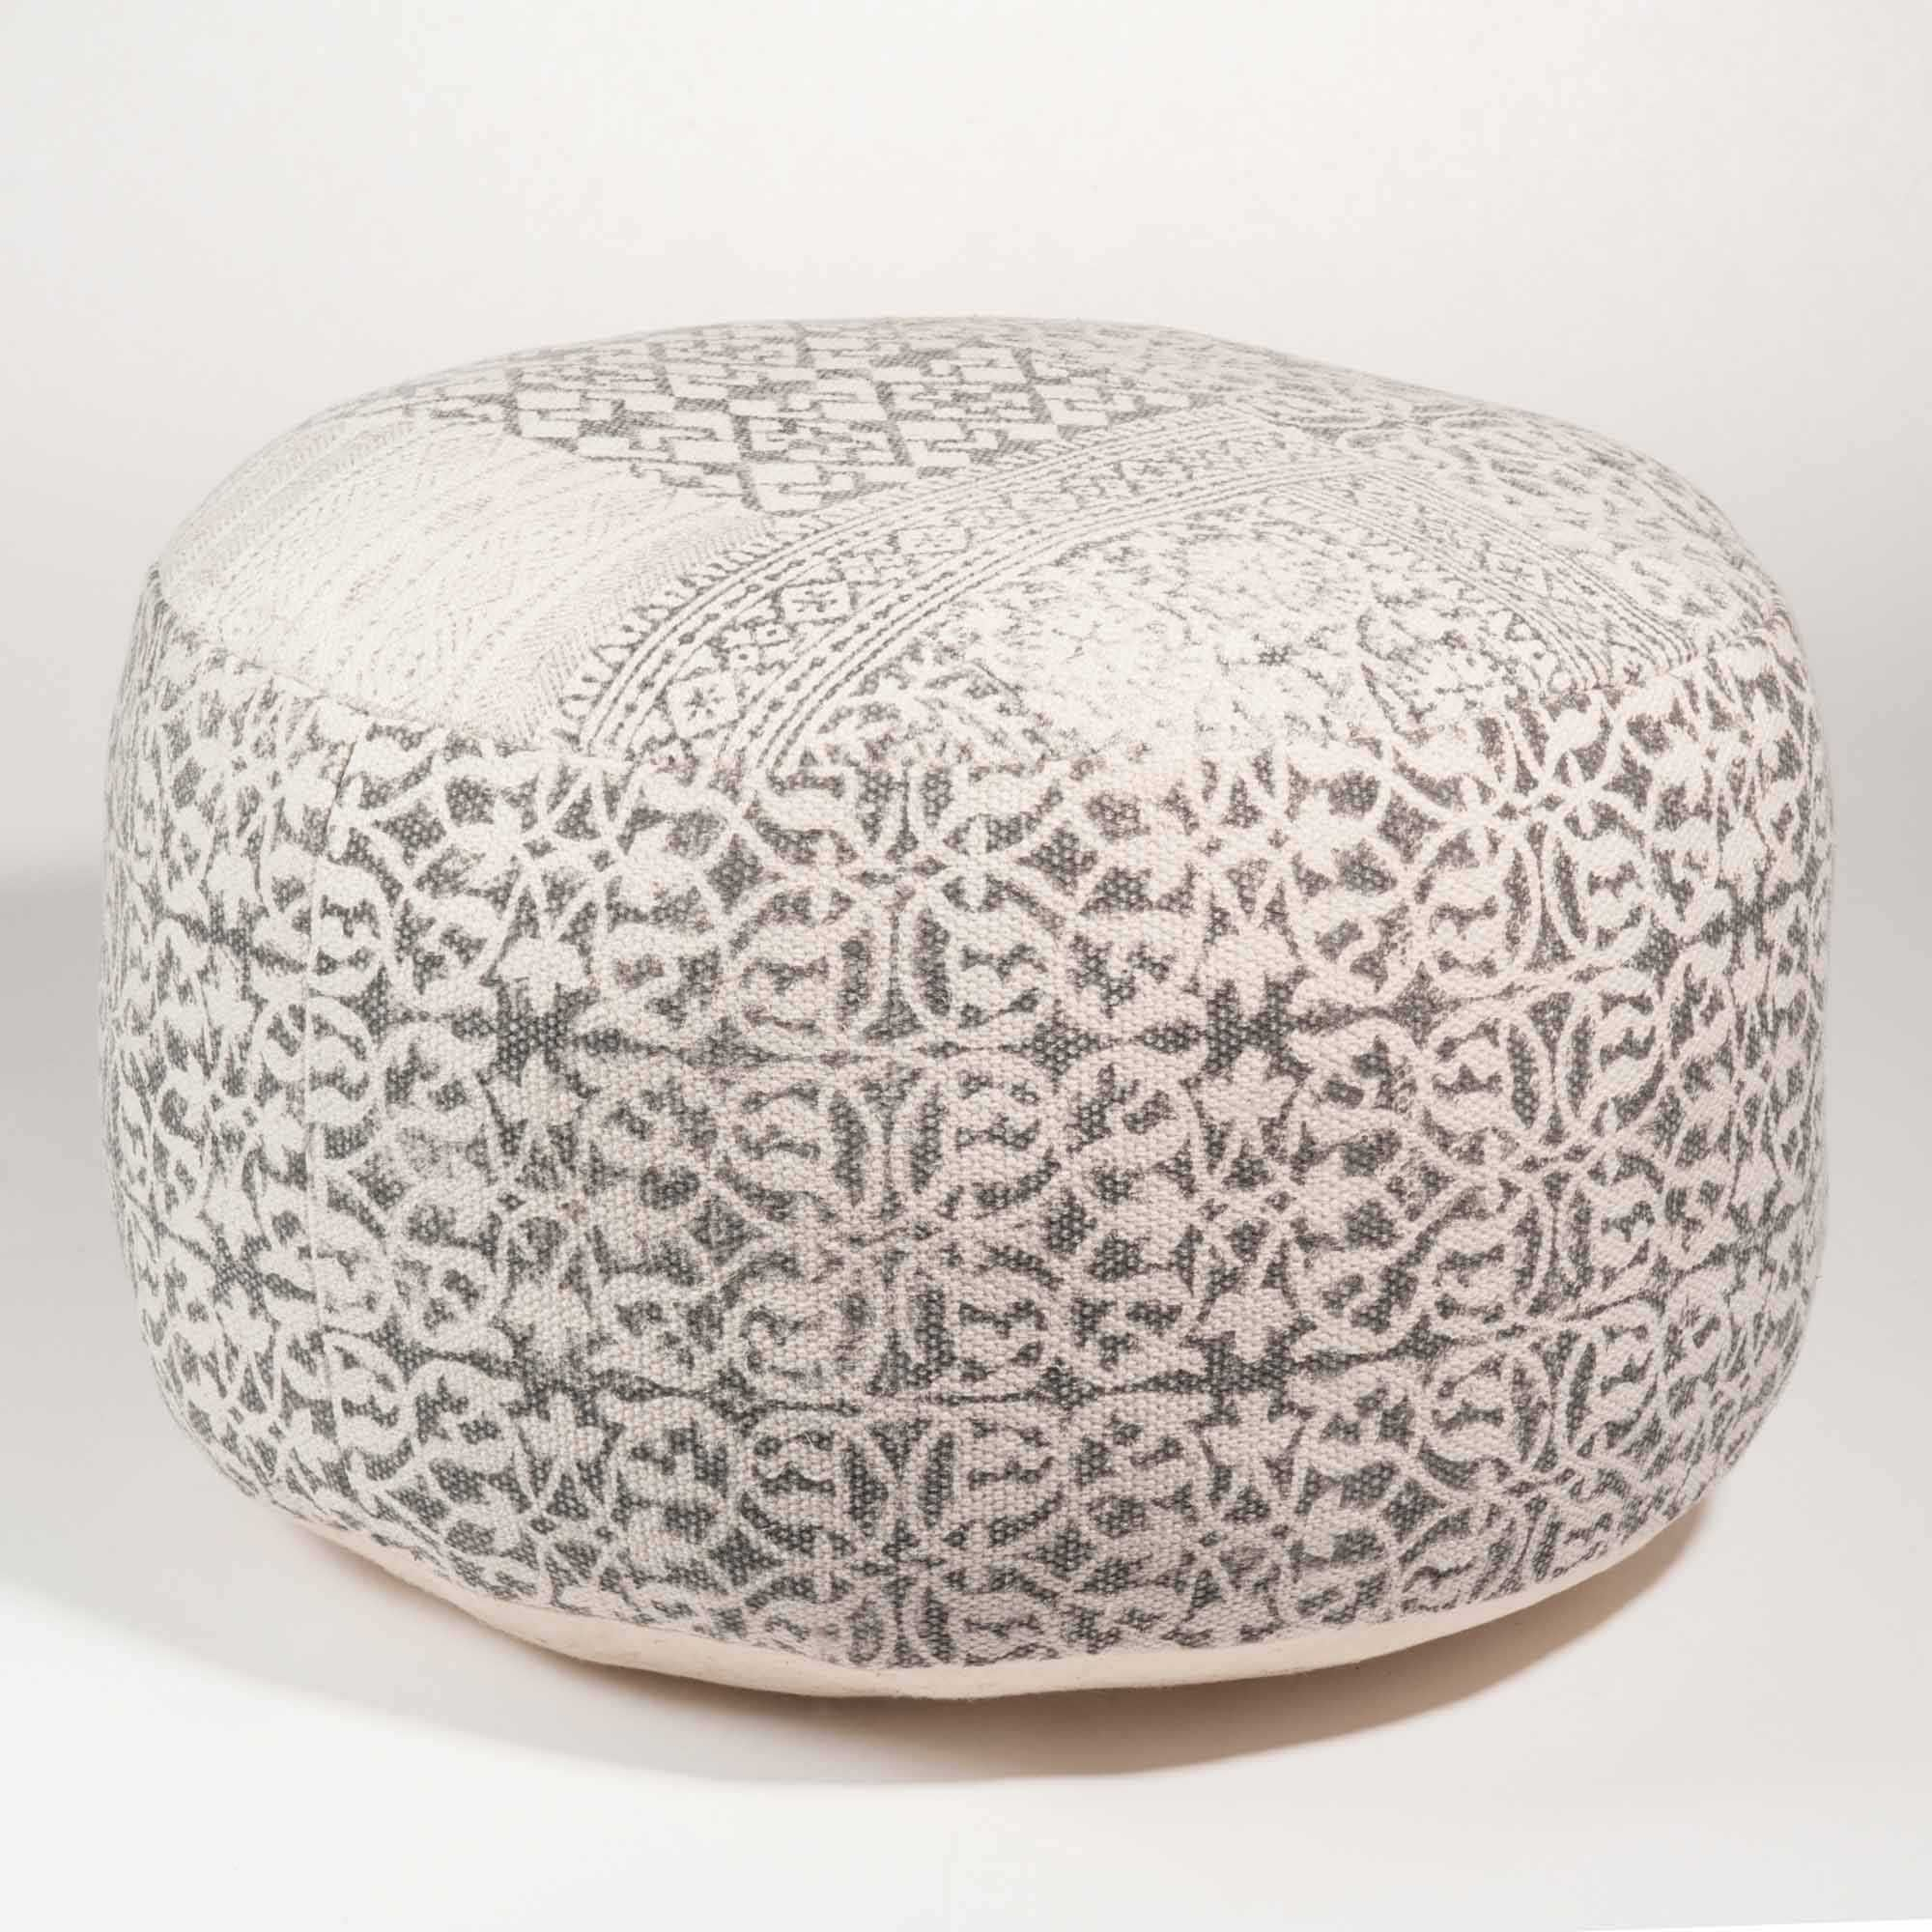 Alinea Pouf Poire Top Discover Maisons Du Monde U New Furniture U Interior